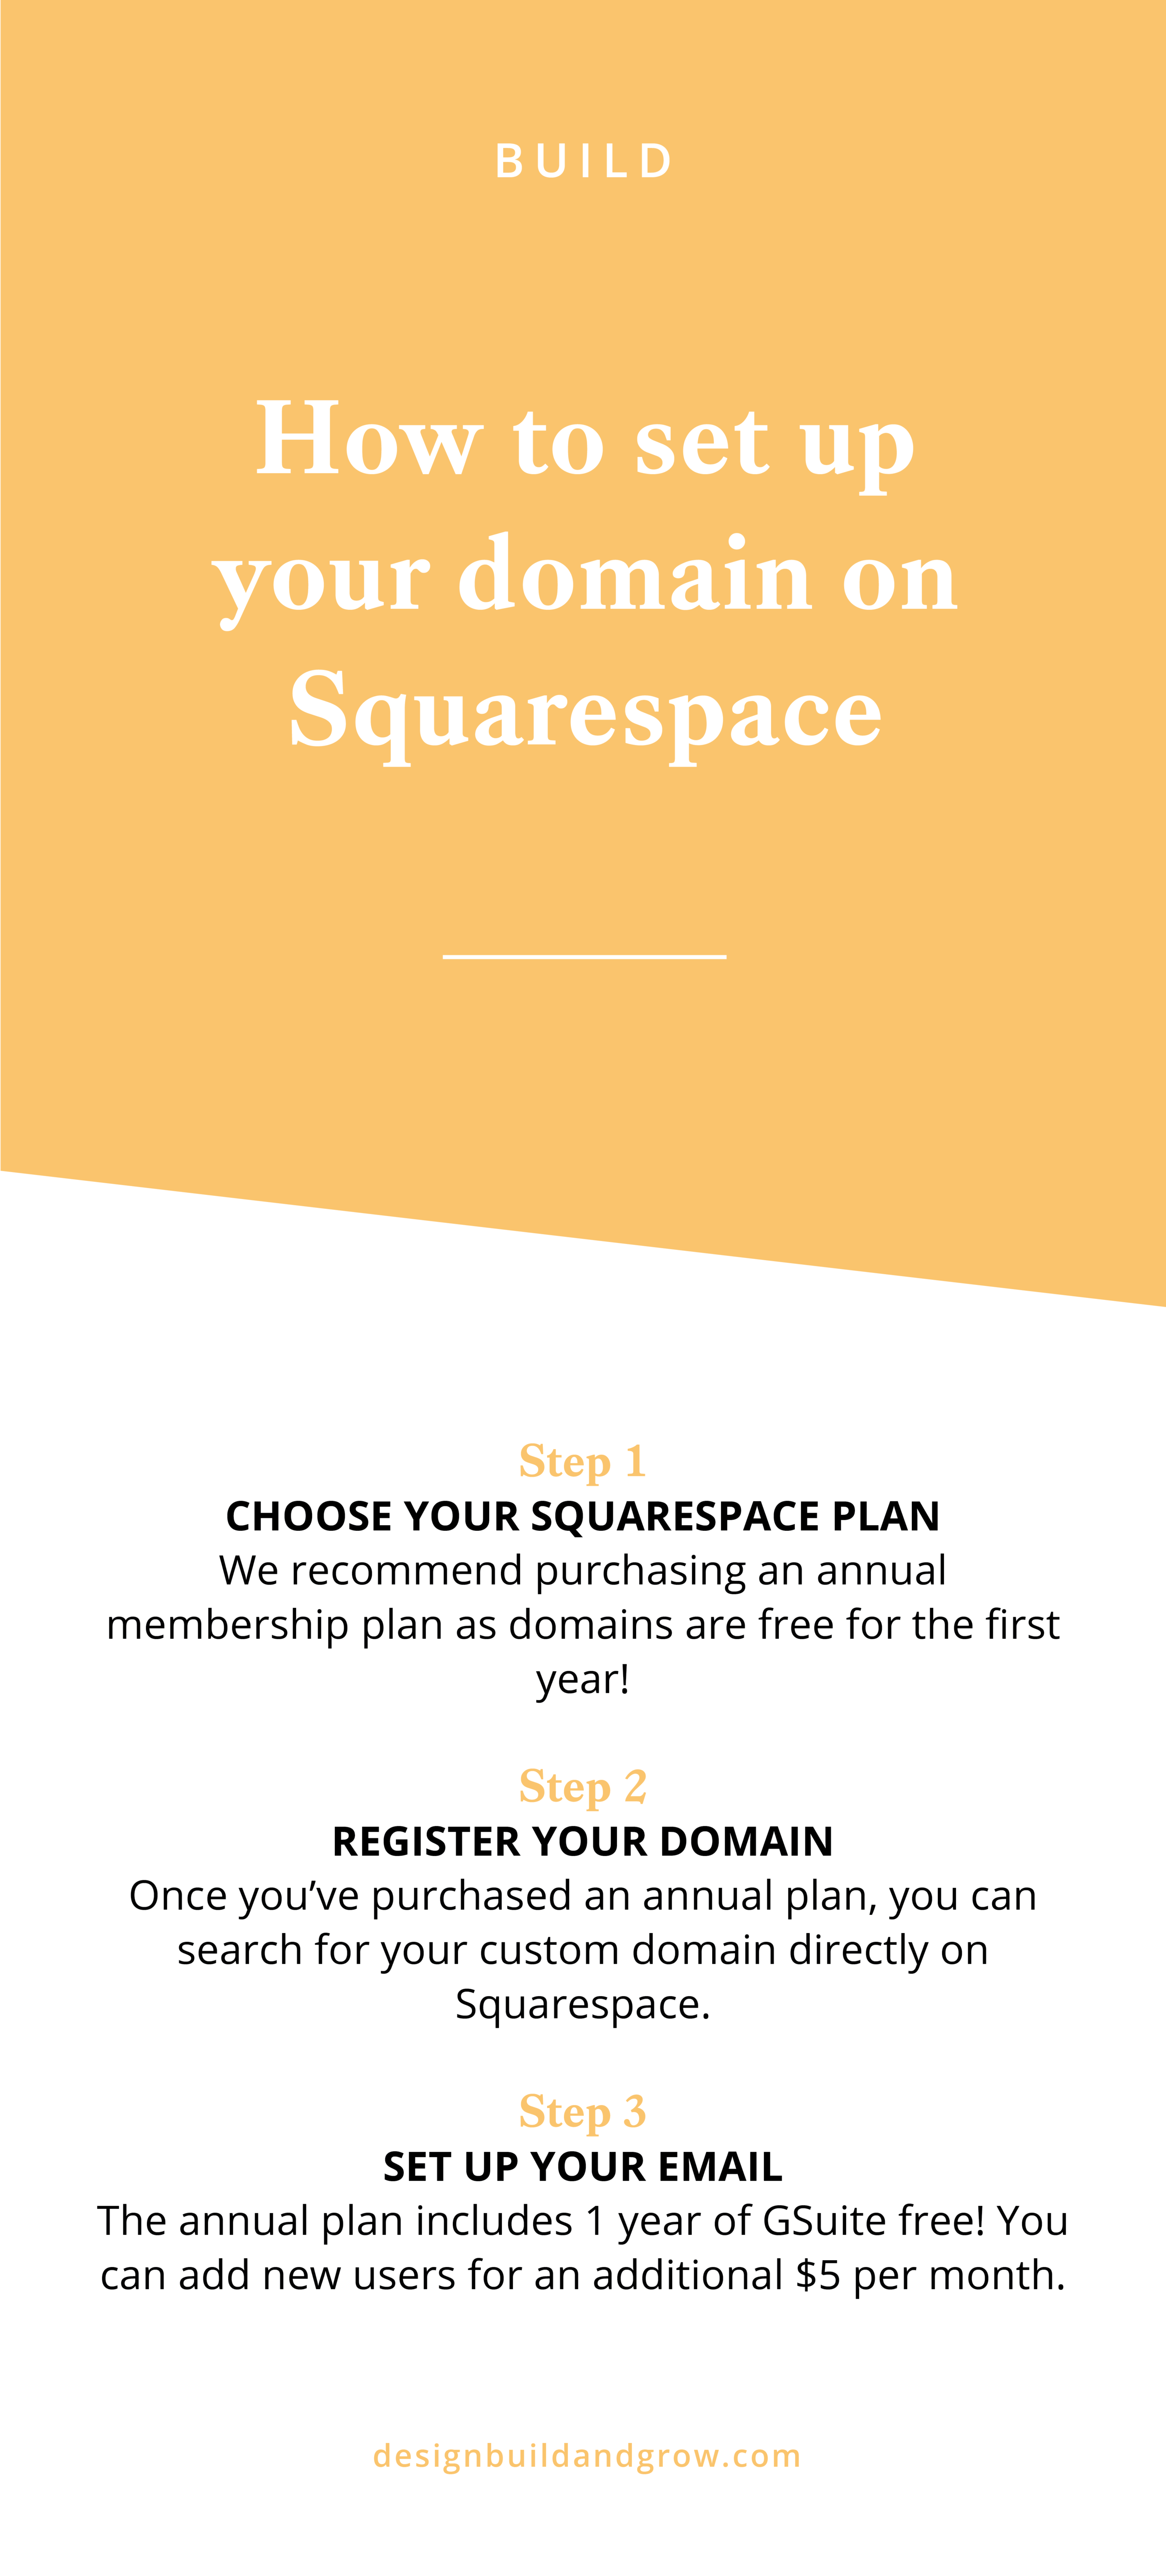 How to set up your domain in Squarespace